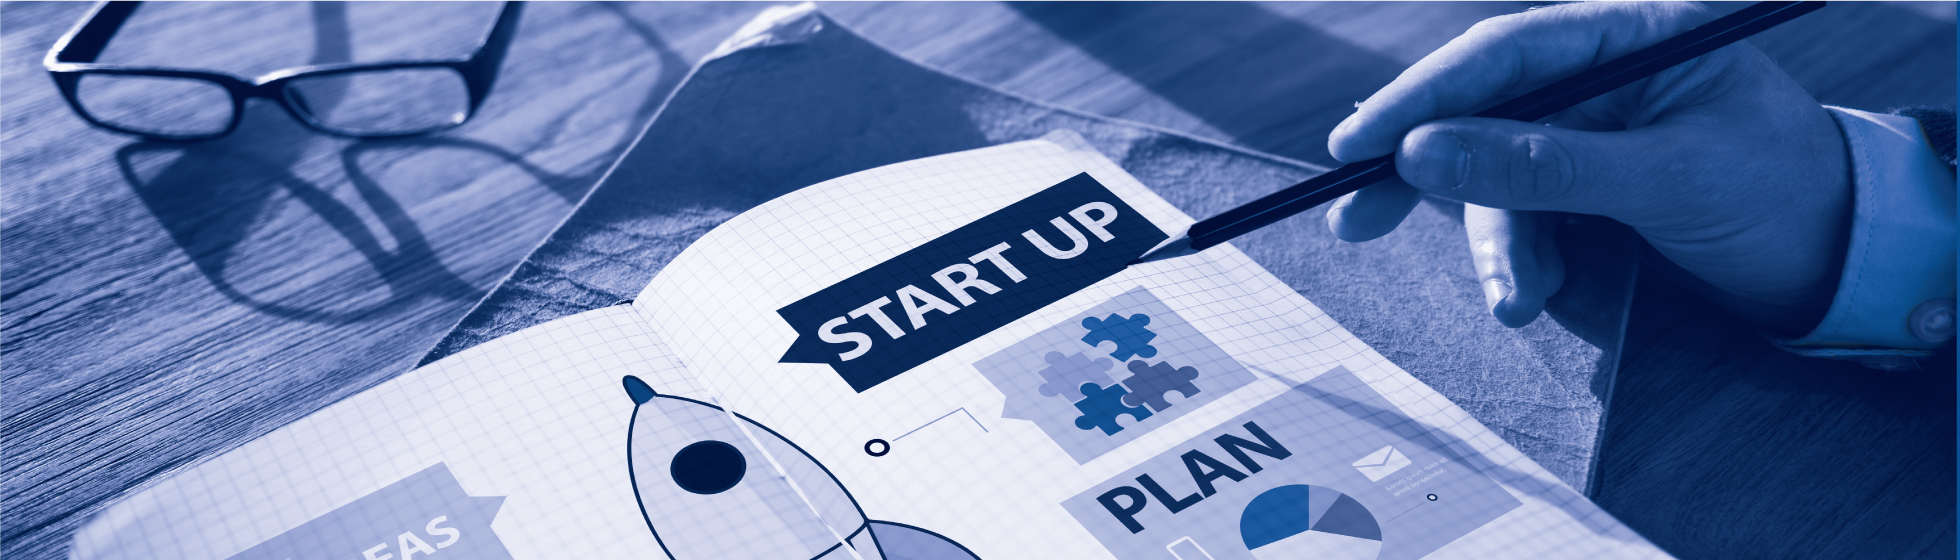 Scouting for Israeli technological companies and startups - a marketing consultant